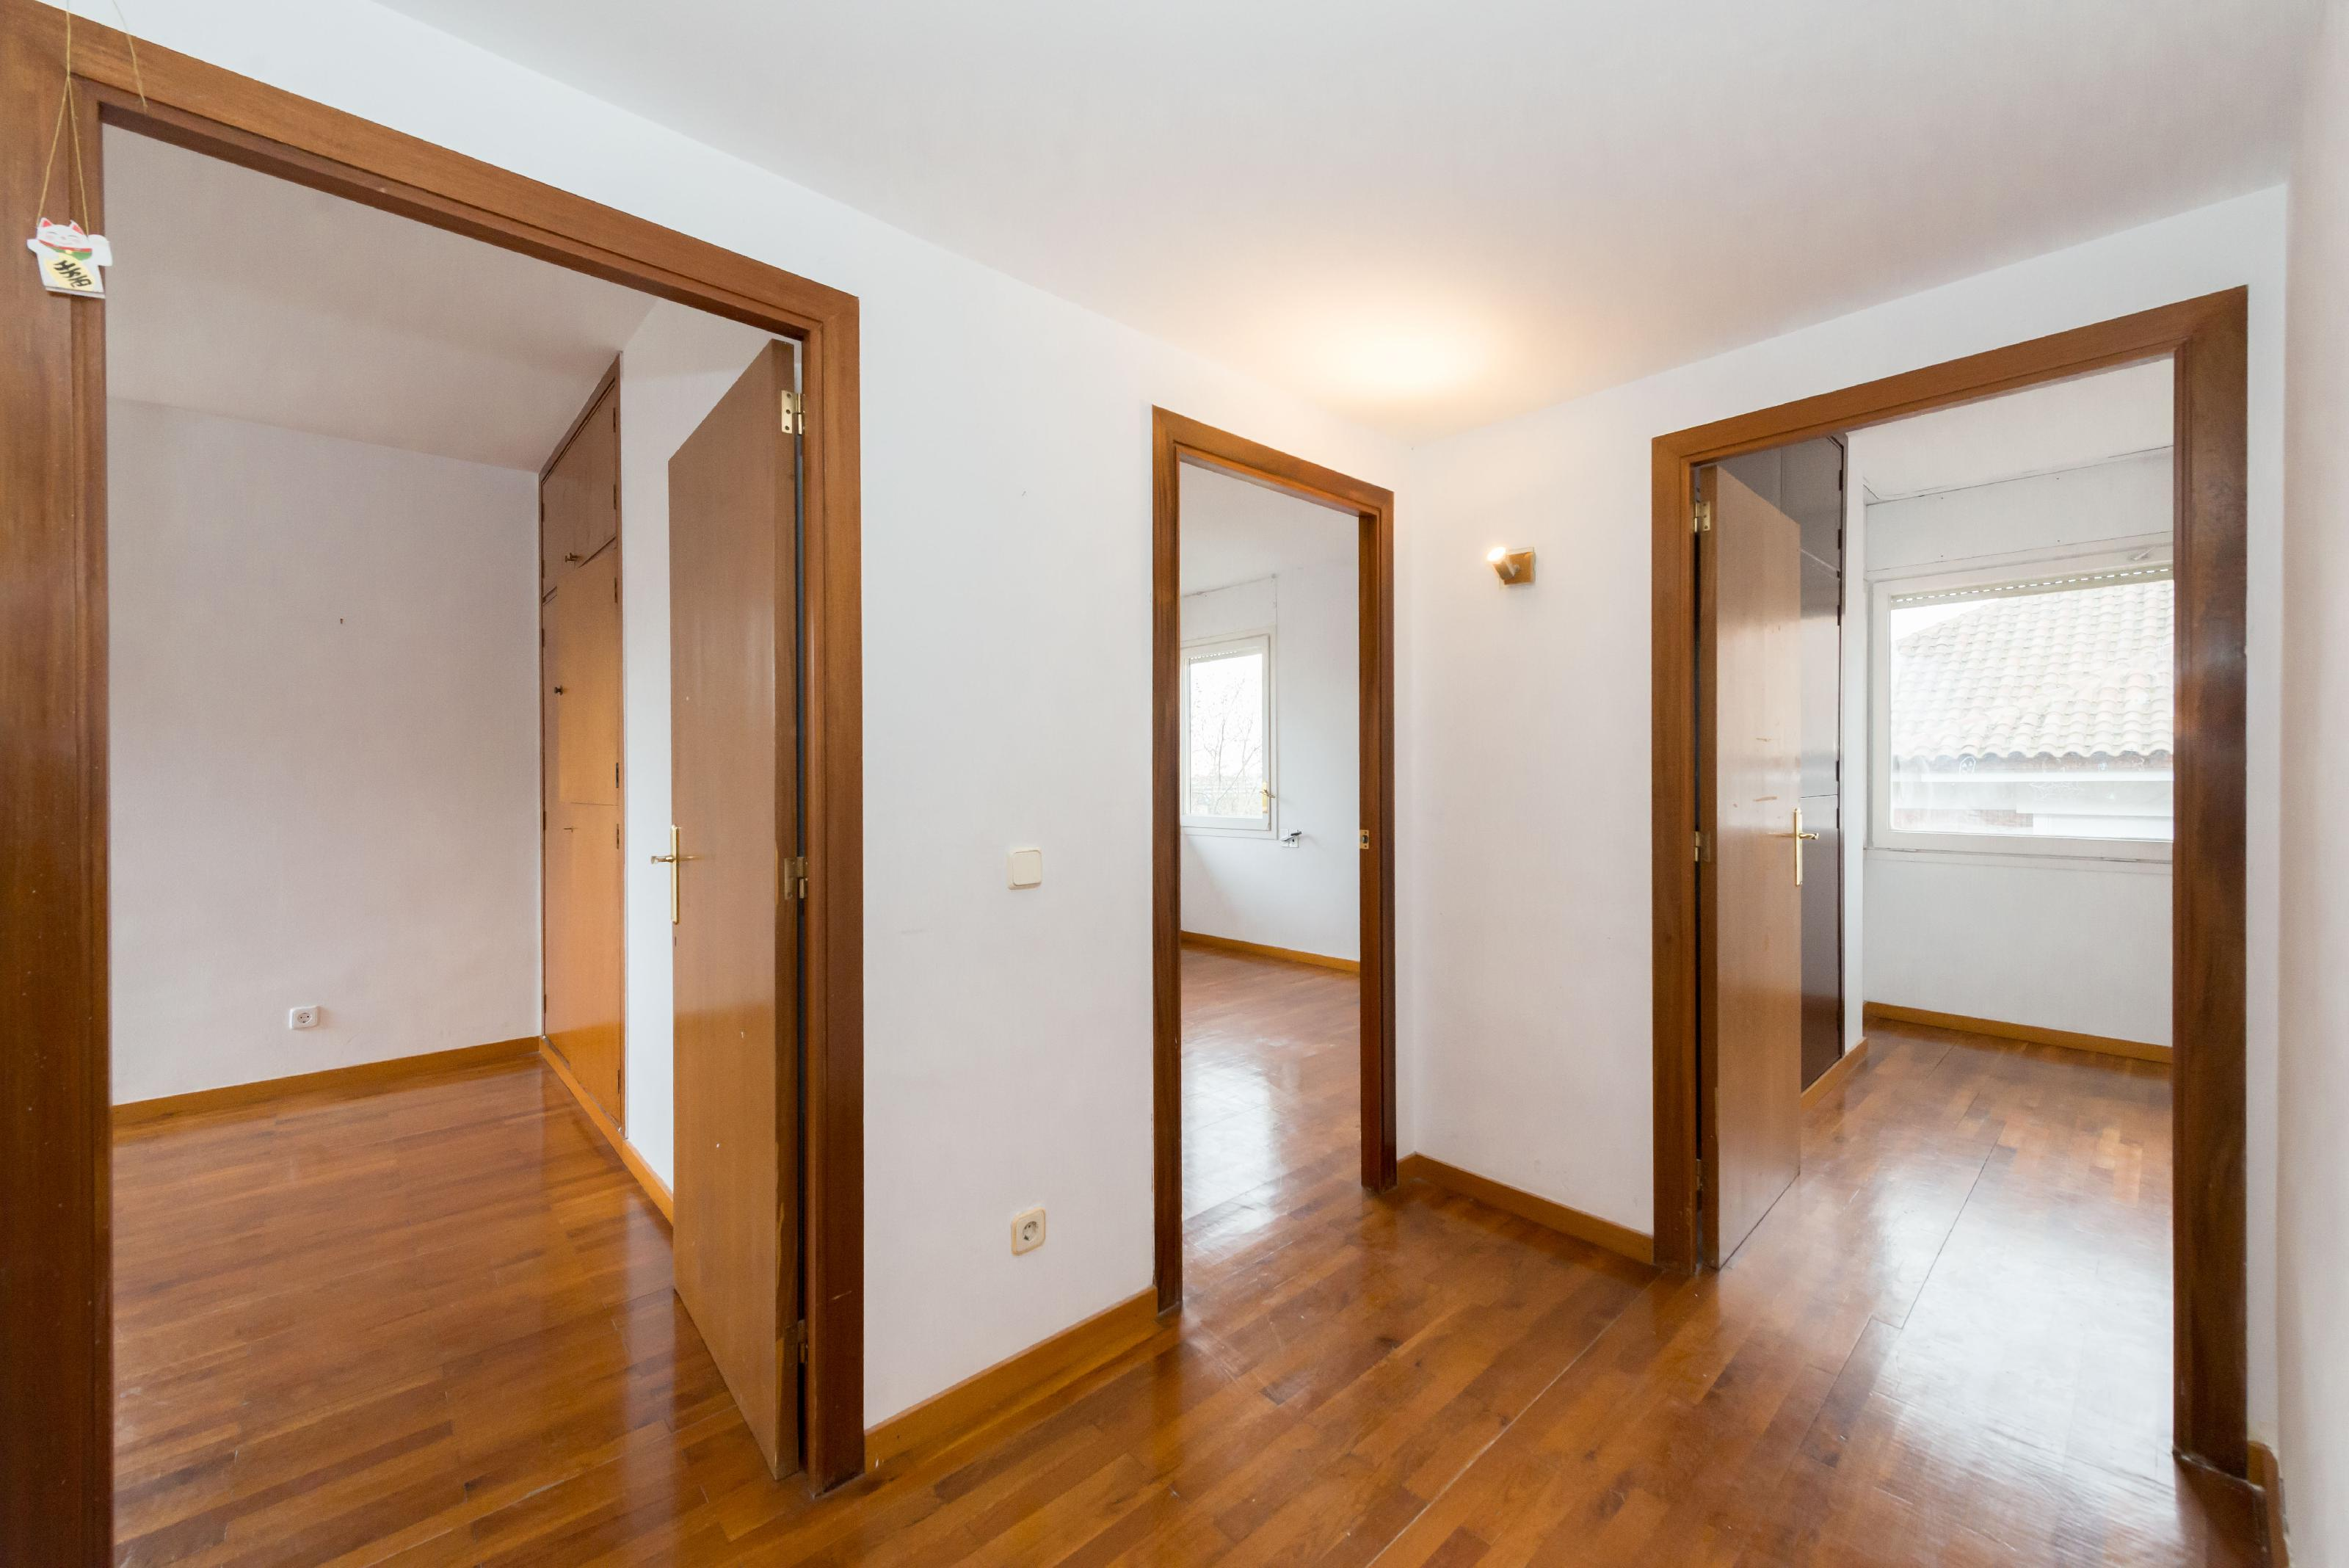 245495 Penthouse for sale in Les Corts, Pedralbes 20